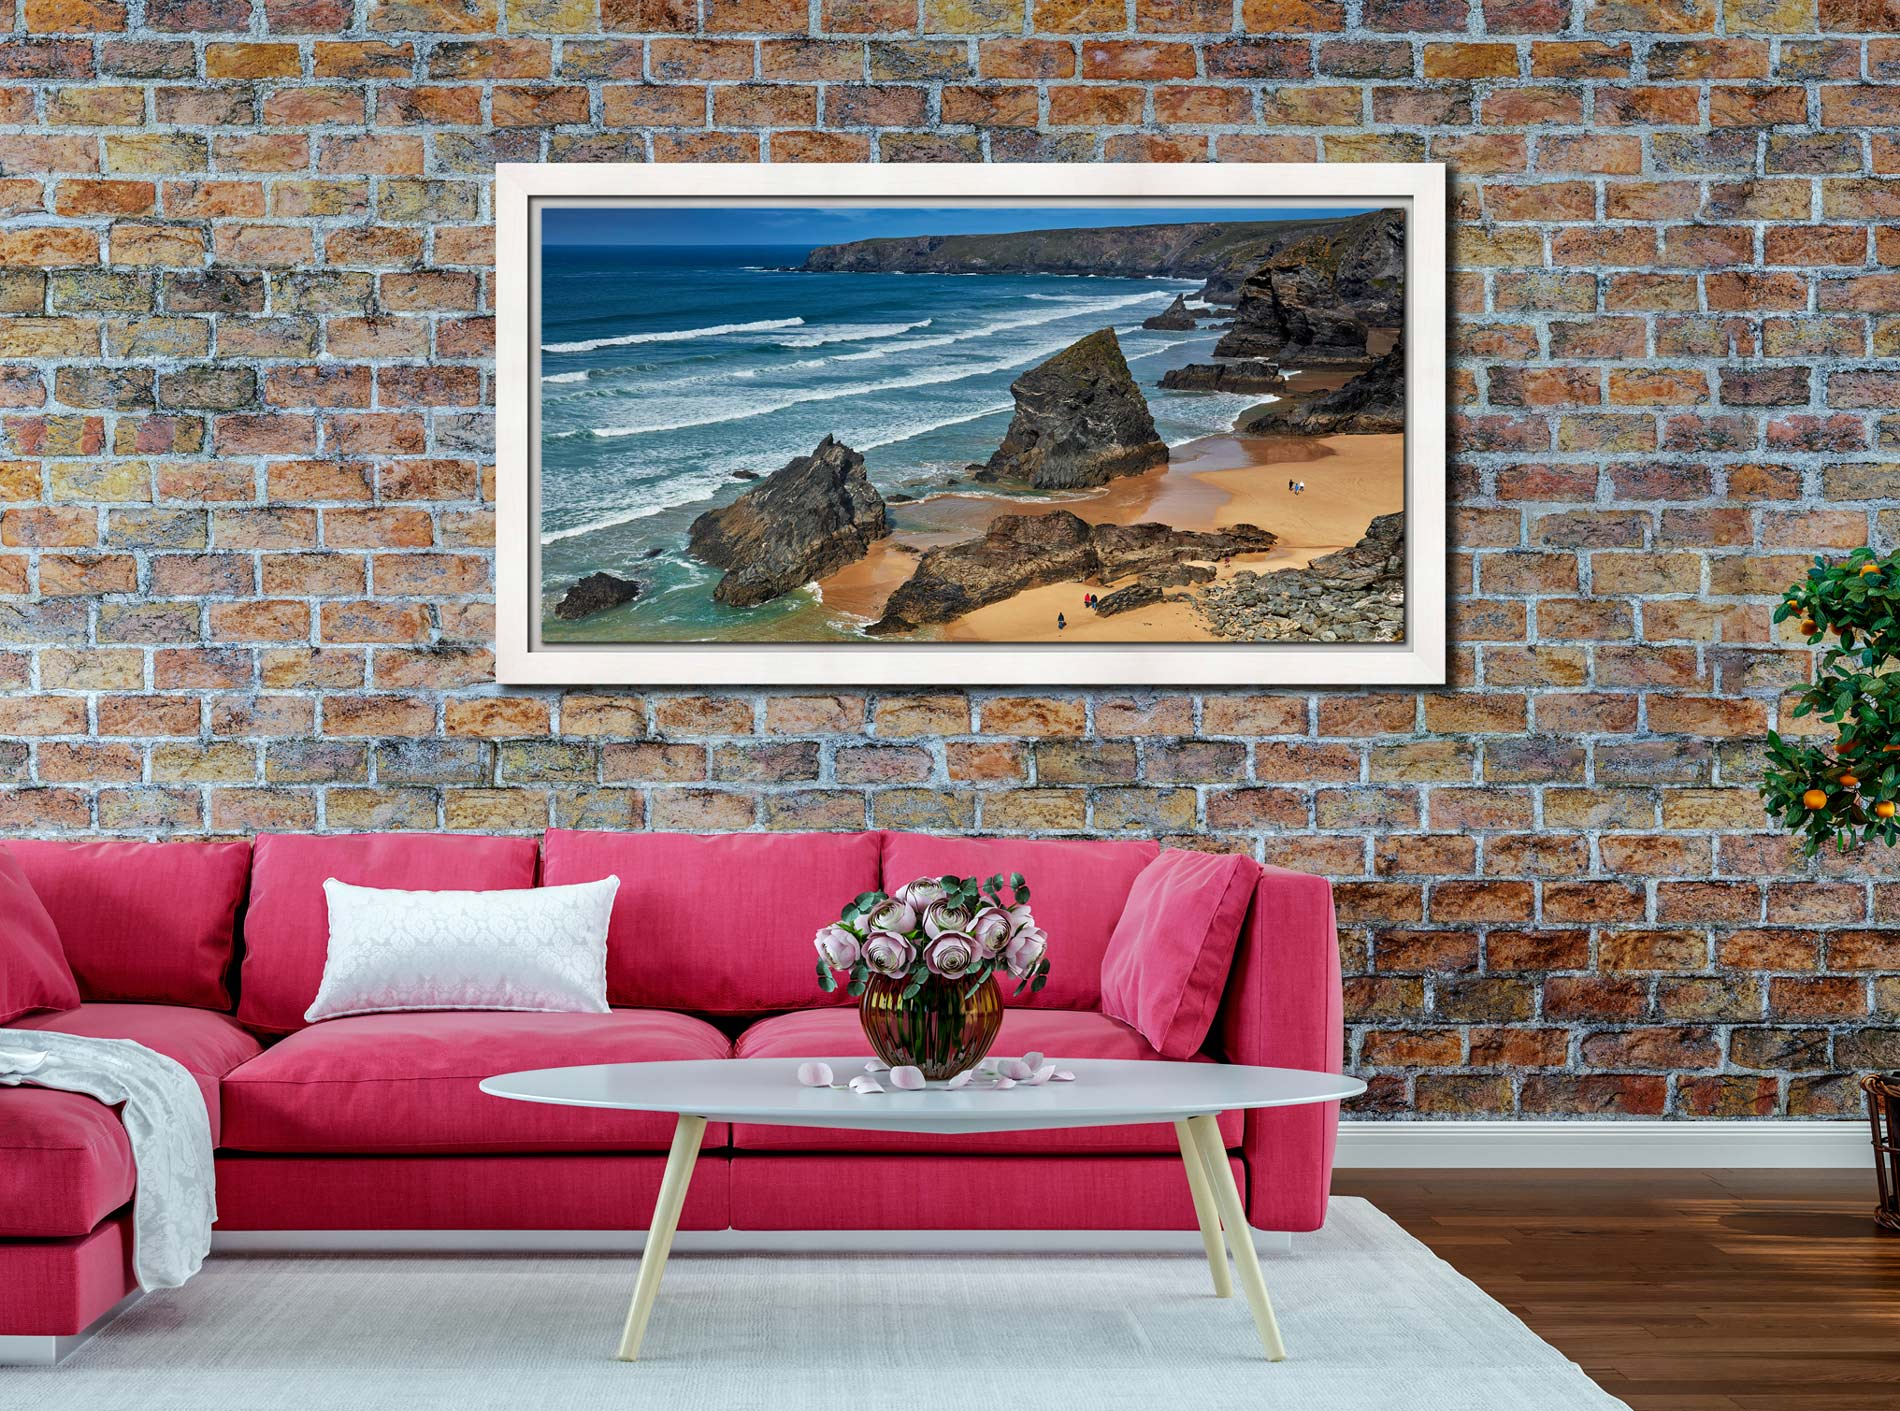 Bedruthan Steps Beach Rocks - White Maple floater frame with acrylic glazing on Wall